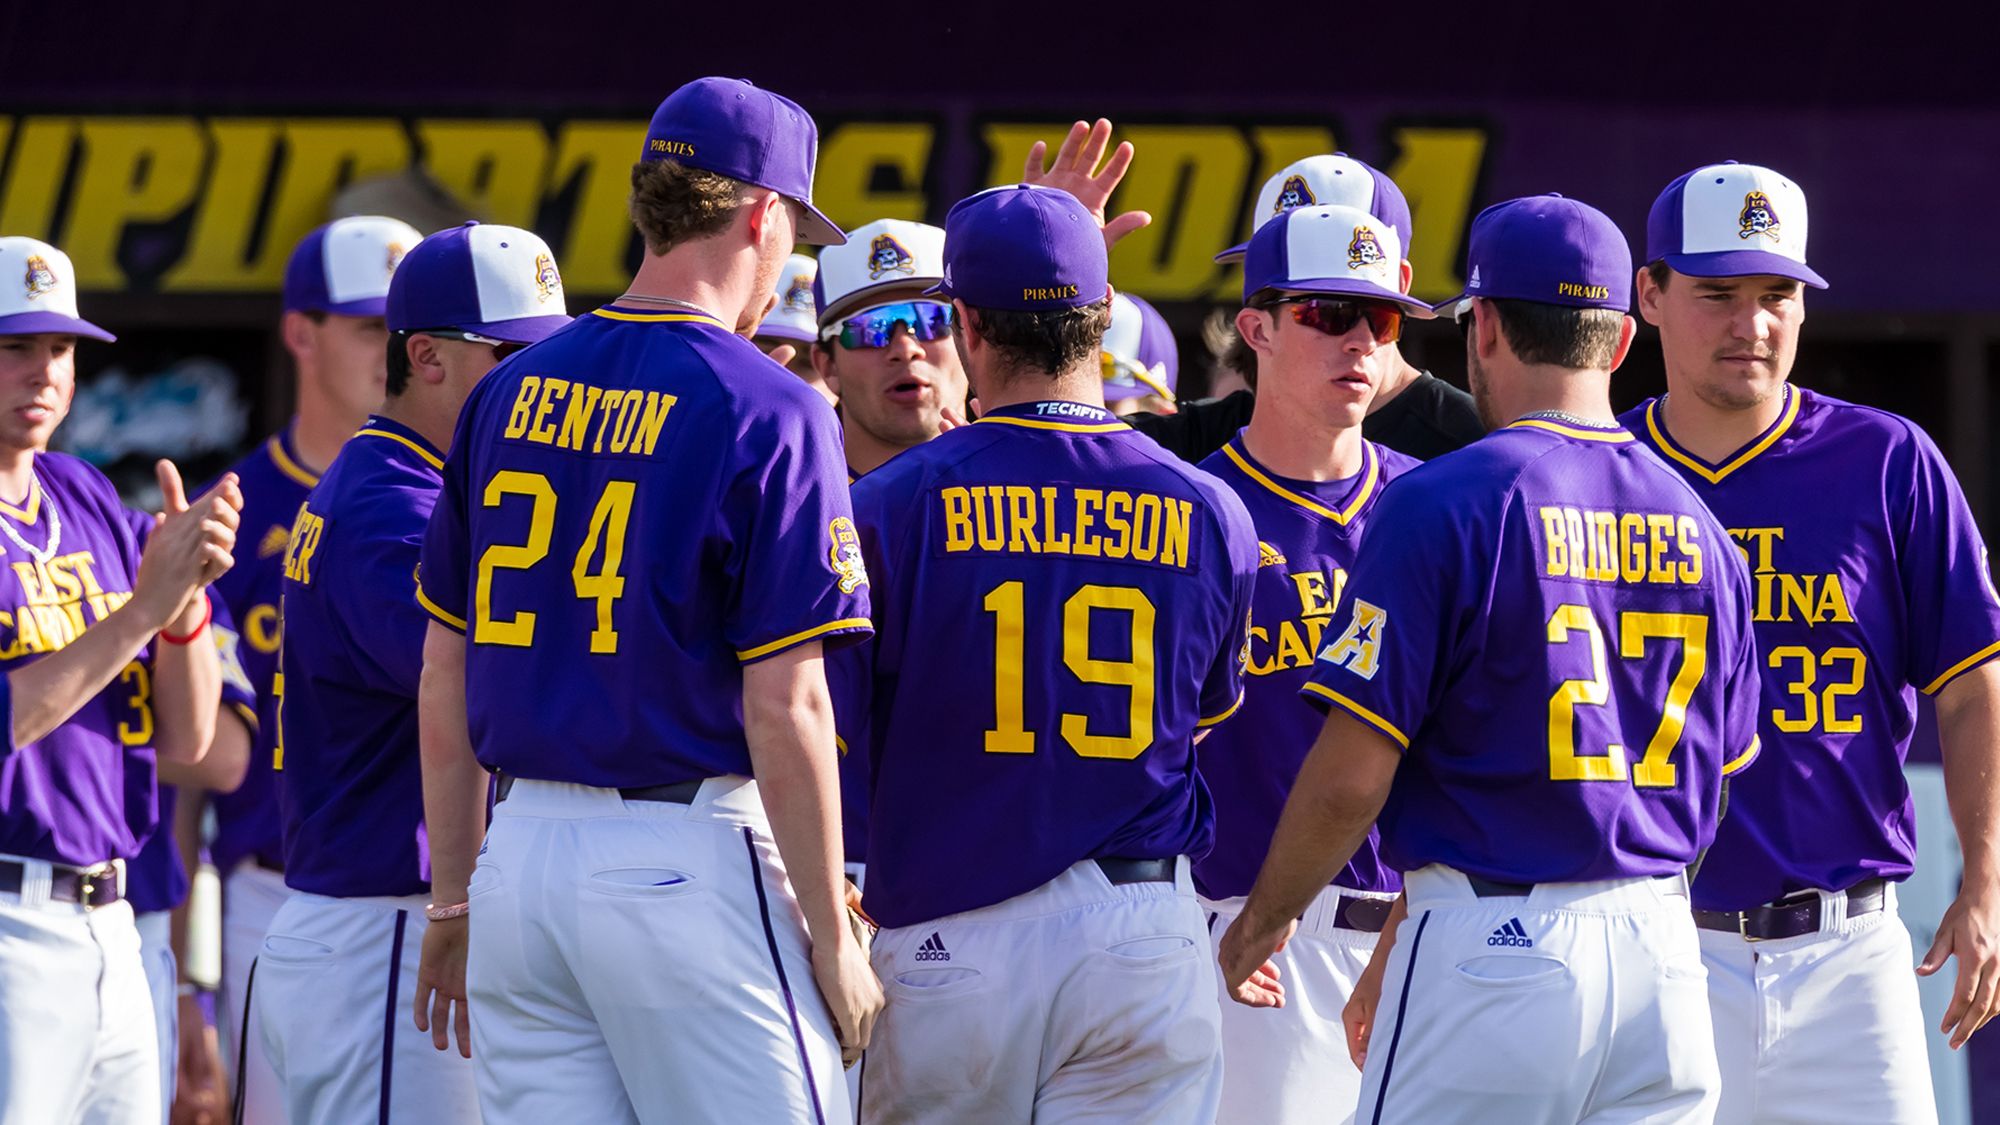 f5f066c9c ECU Announces 2019 Baseball Schedule - East Carolina University ...